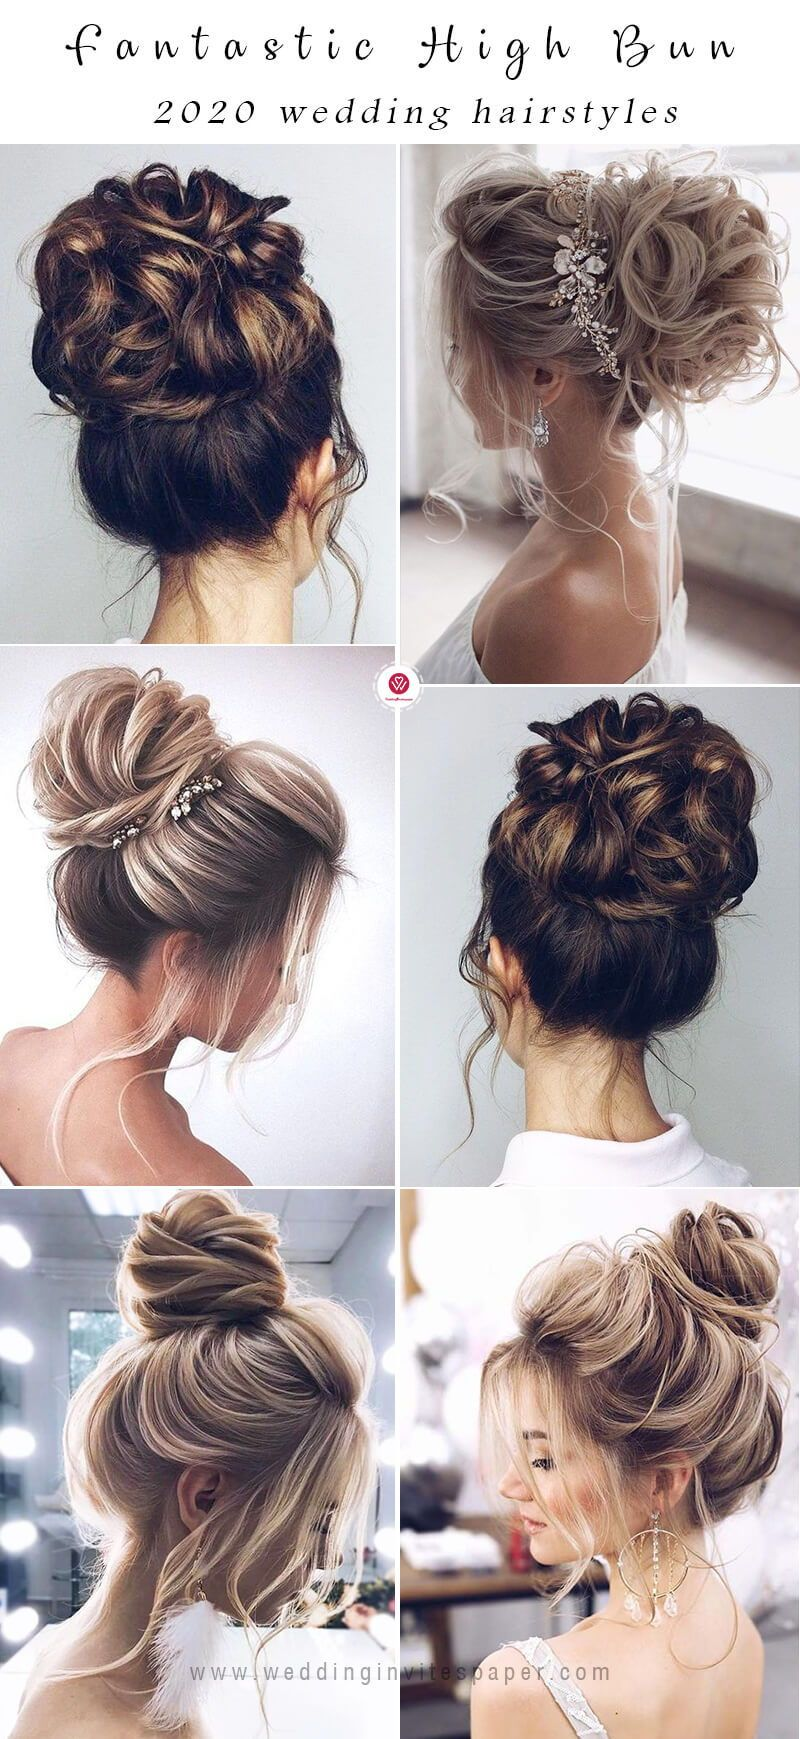 47 Romantic and Easy Updo Wedding Hairstyles for 2020 | Bridal hair buns,  High bun wedding hairstyles, Hair styles